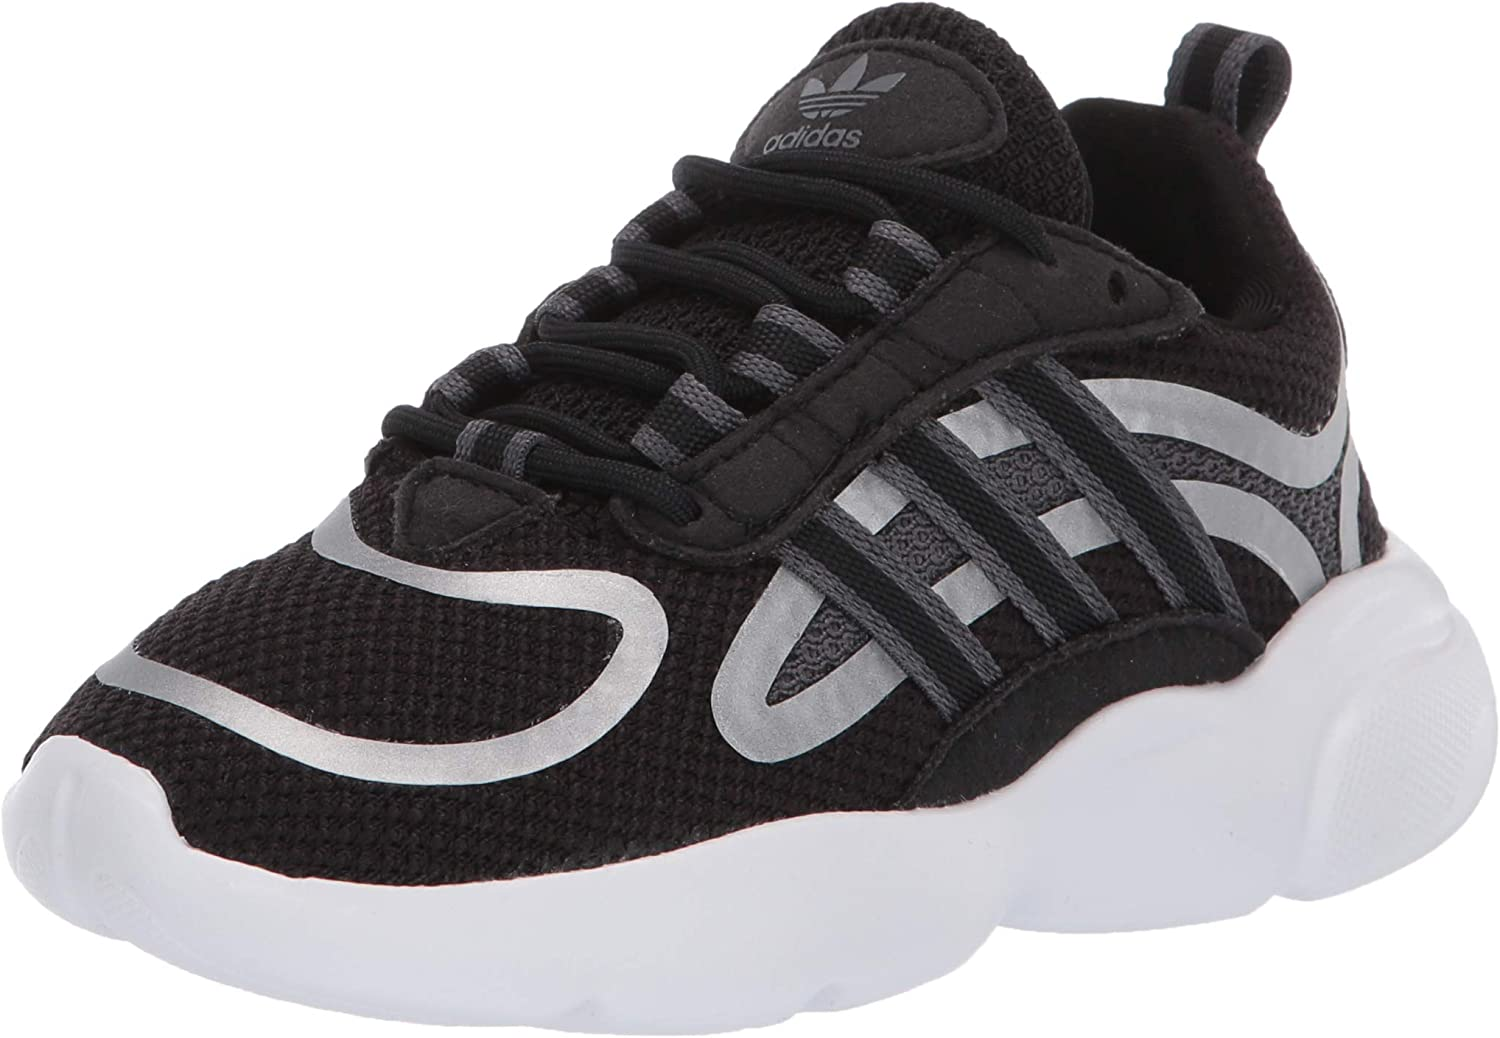 adidas Originals Men's Sales results No. 1 Selling and selling Haiwee Sneaker